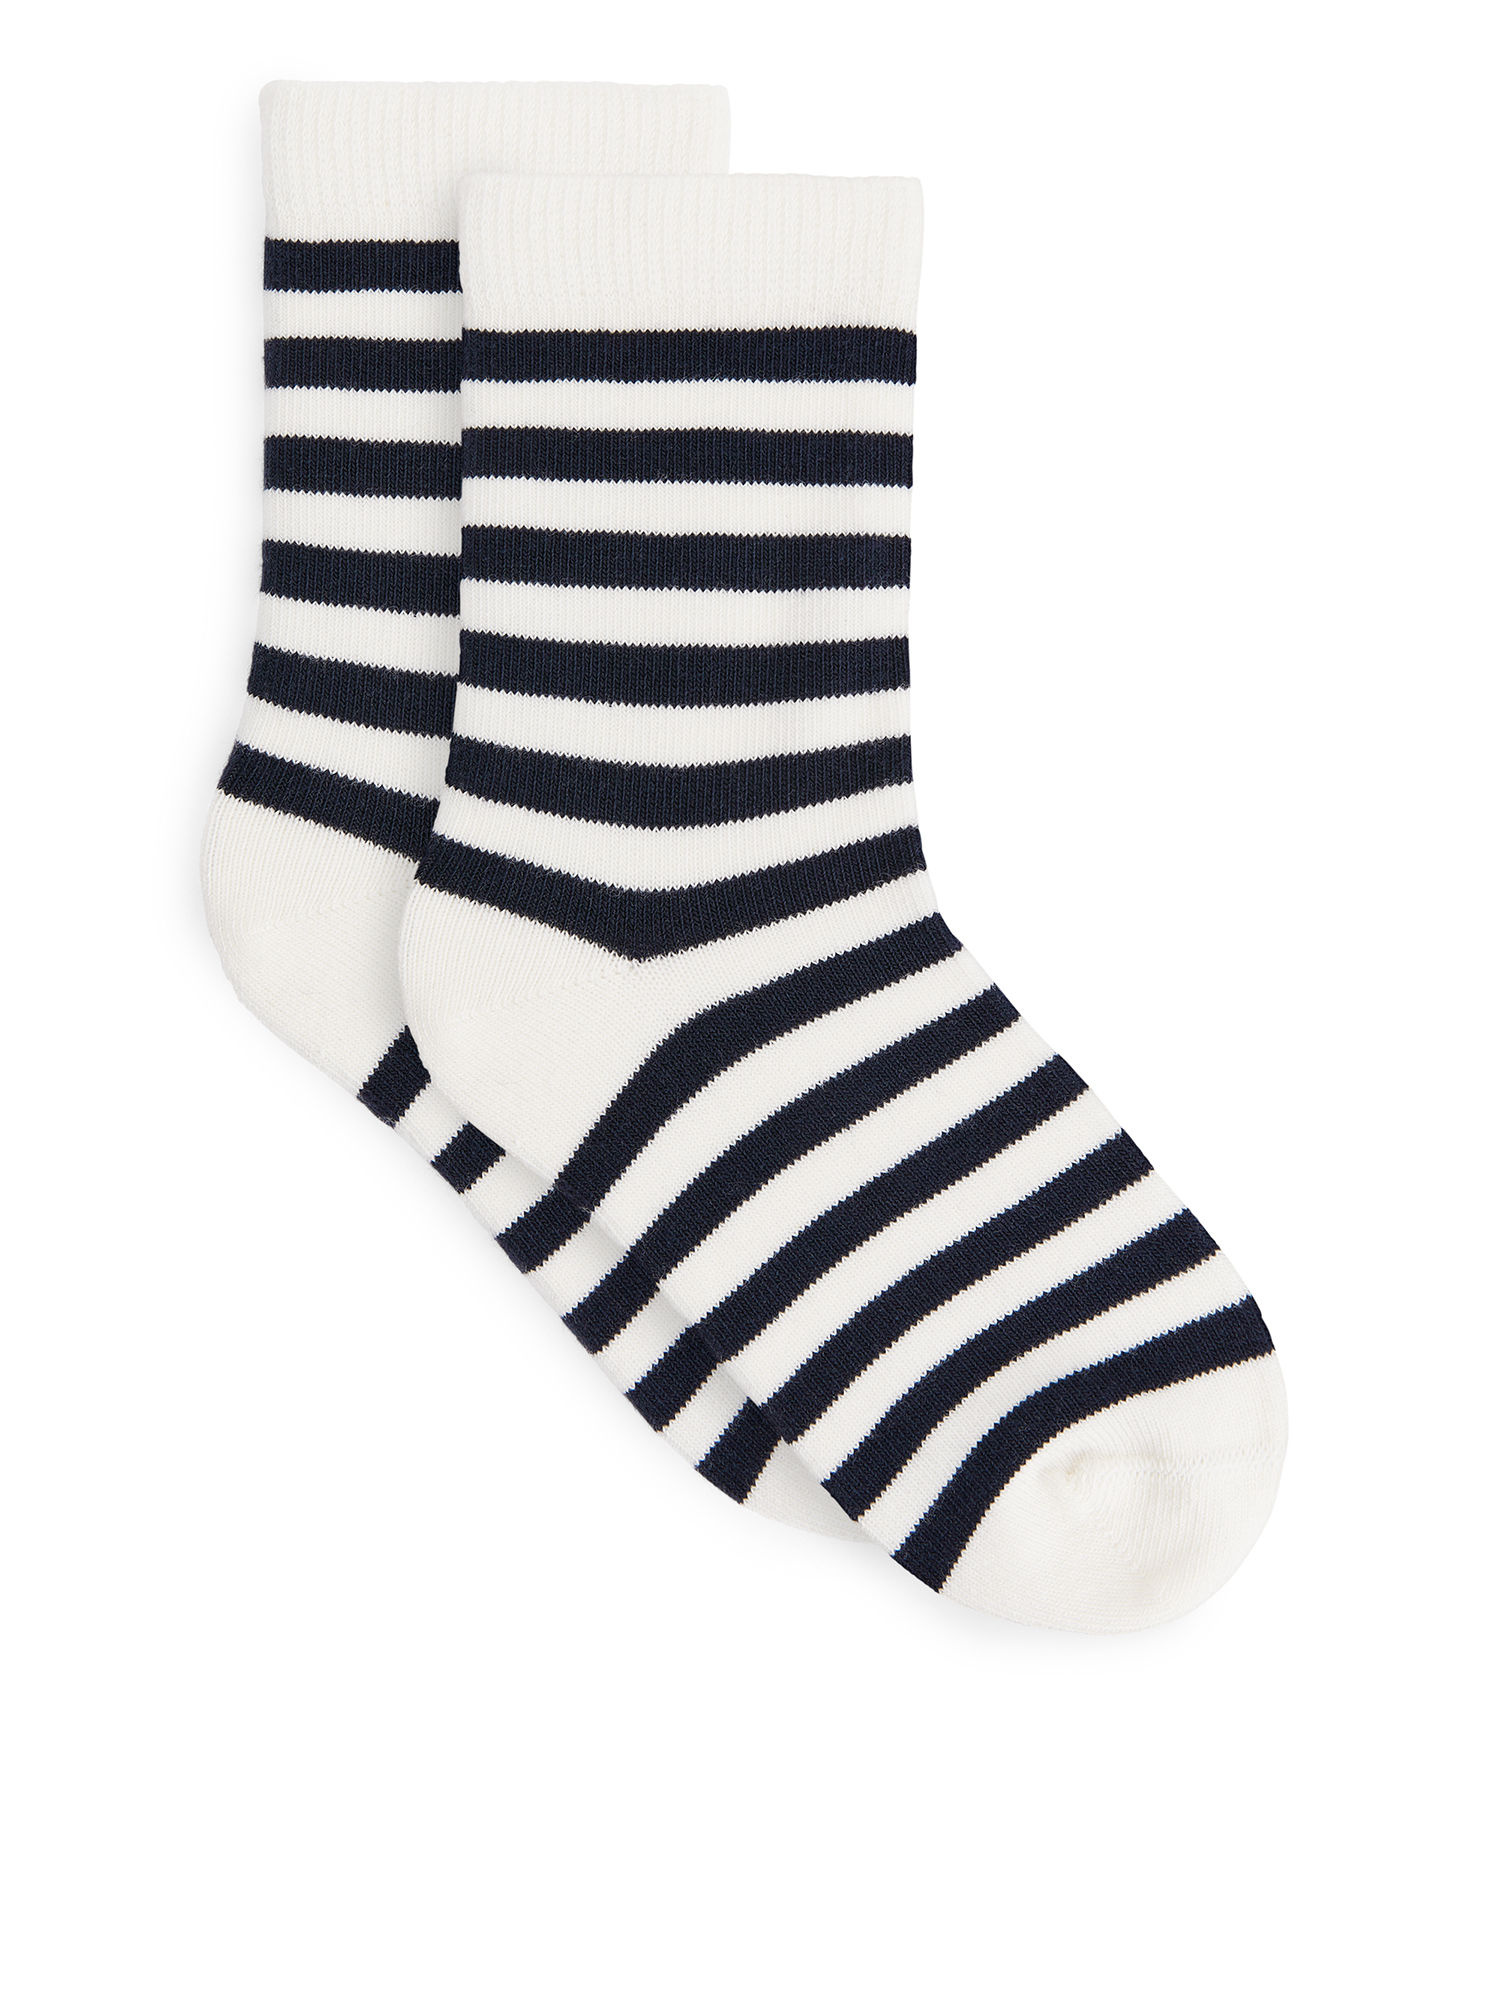 Fabric Swatch image of Arket striped socks, 2-pack in white